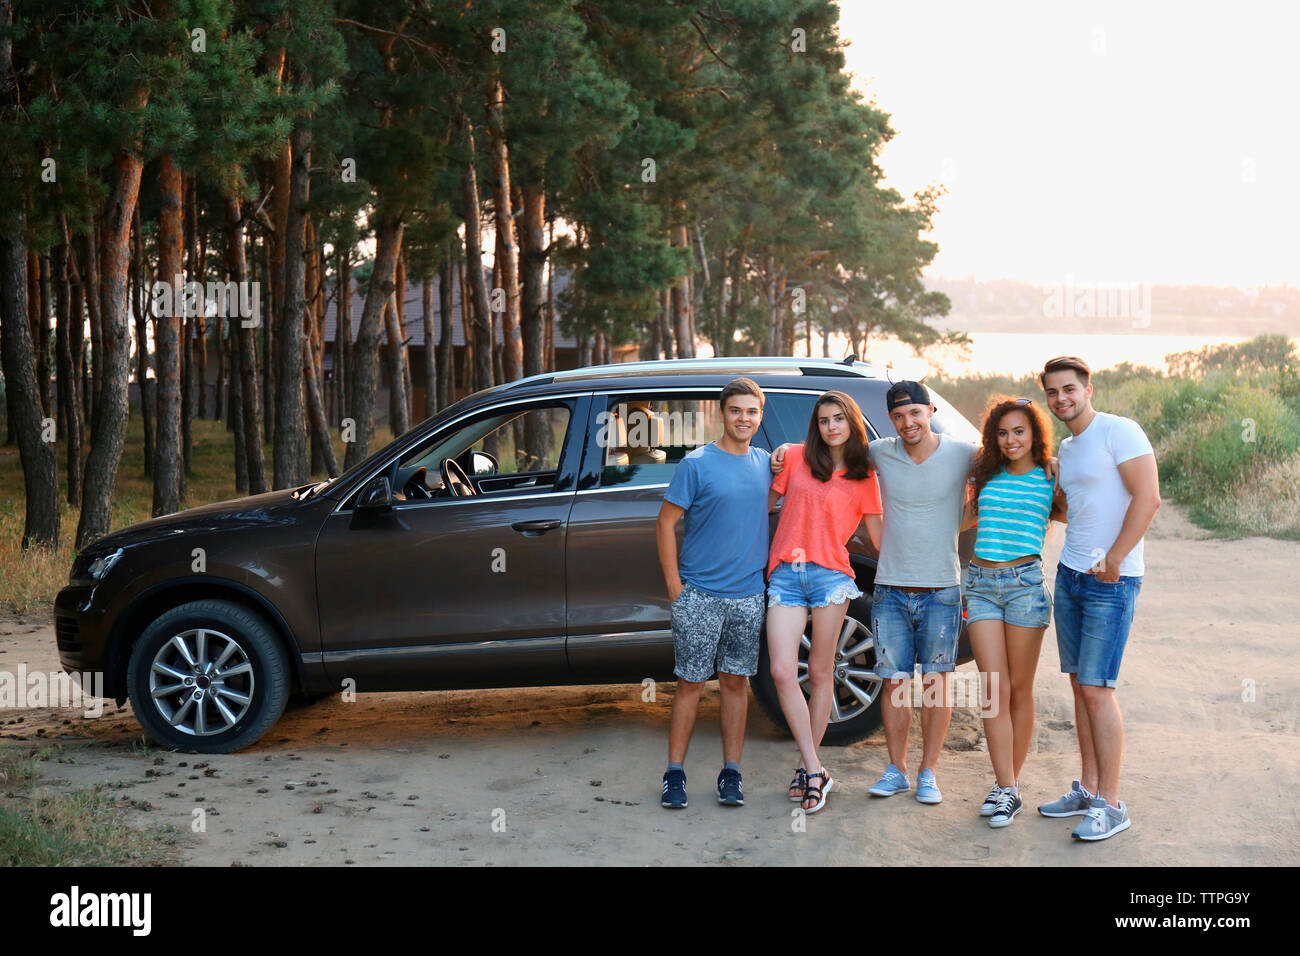 Group of young friends standing near car in the forest - Stock Image